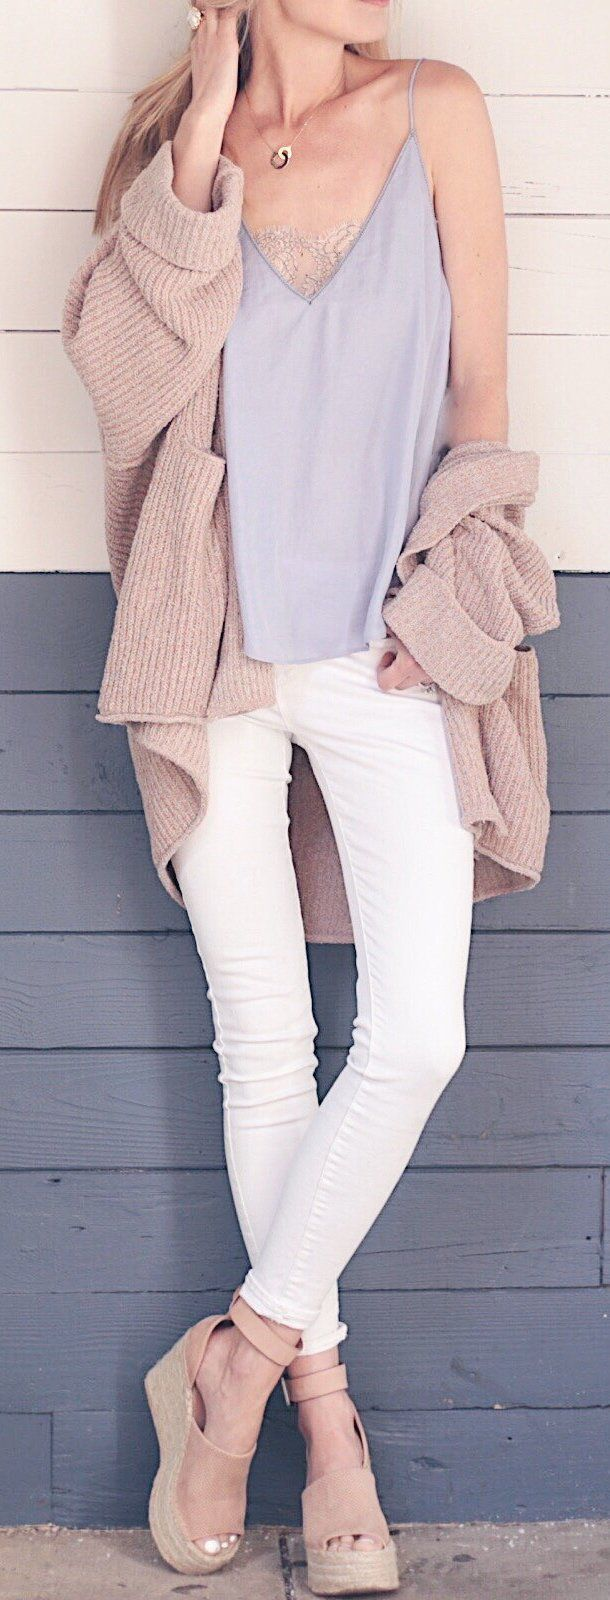 14 stylish spring outfits with white jeans 11 - 14 stylish spring outfits with white jeans